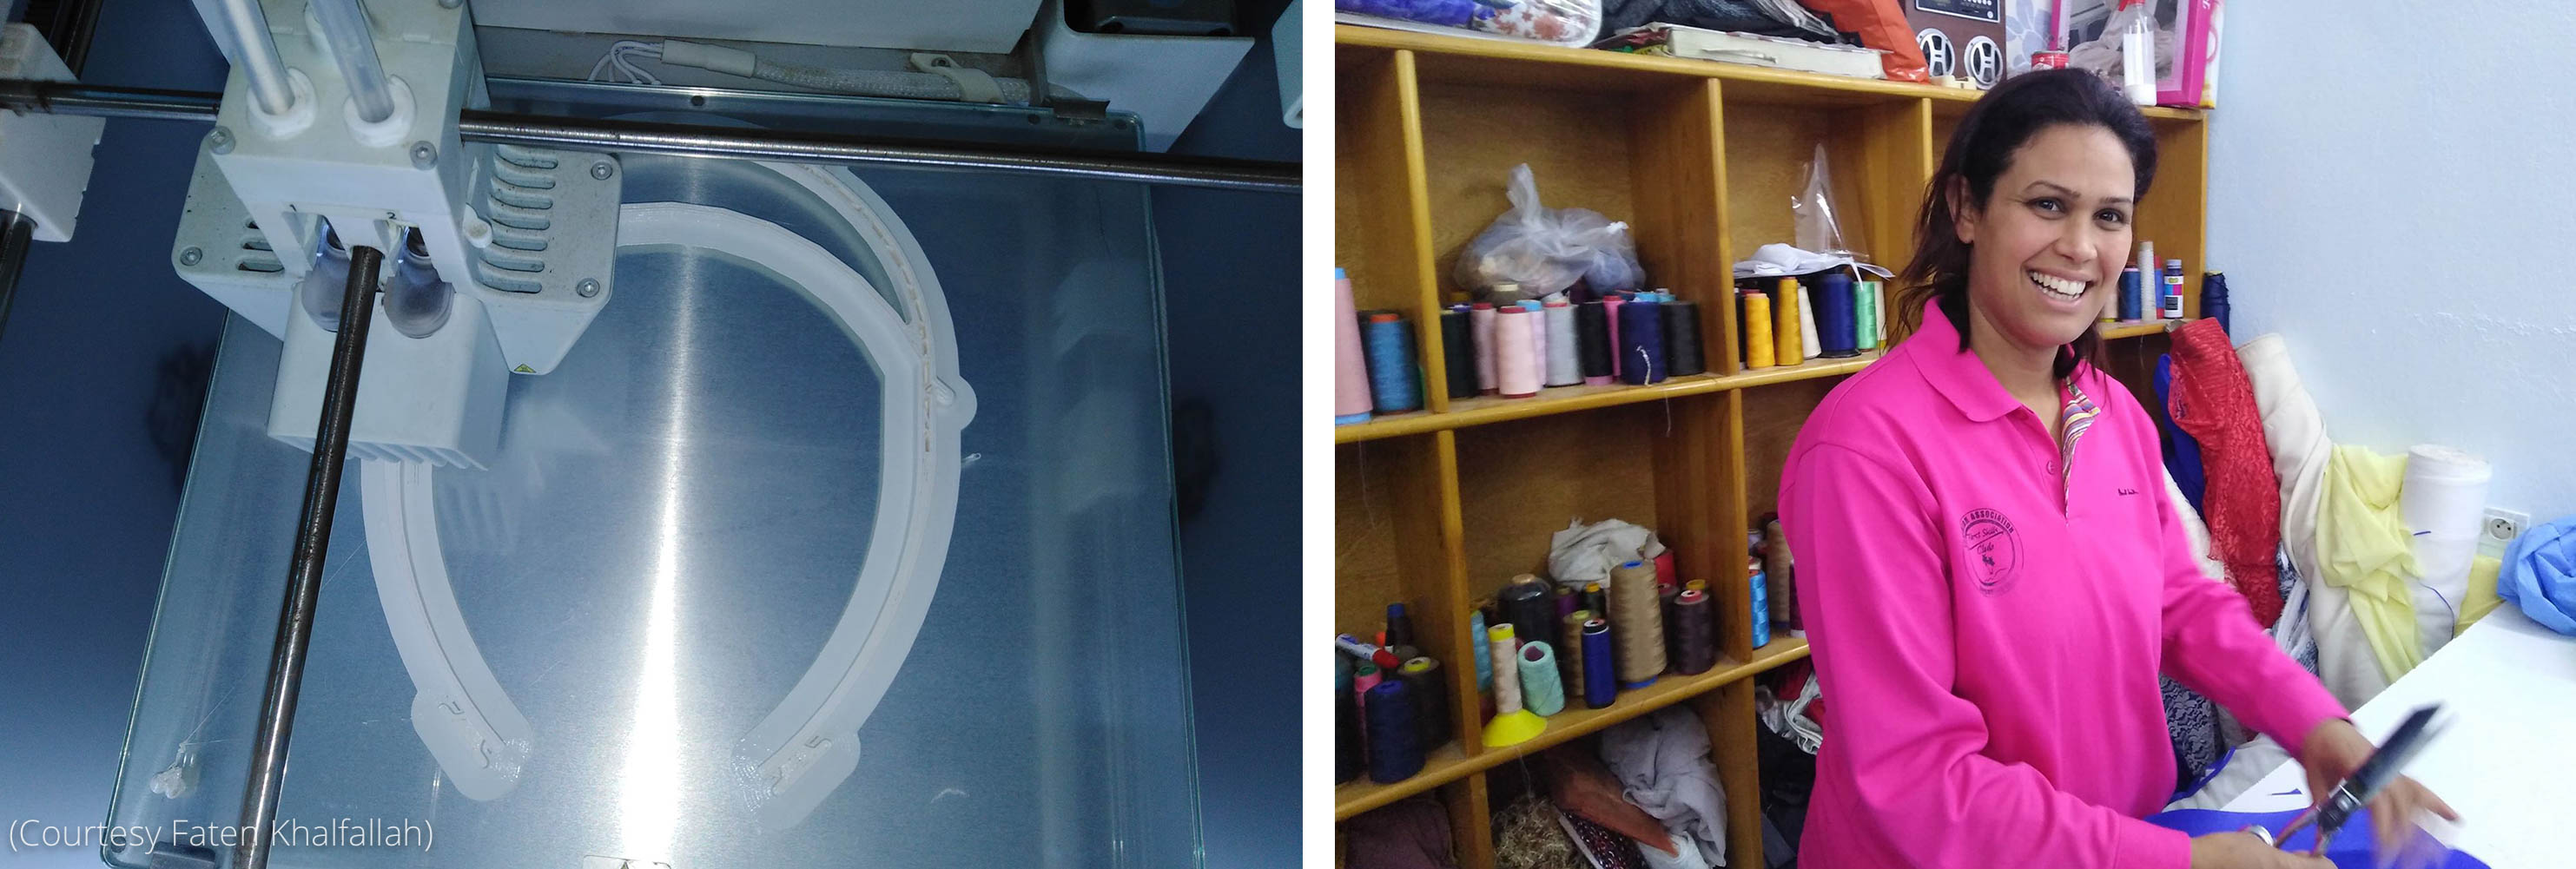 Left: 3D printout of protective equipment. Right: Faten Khalfallah holding scissors and standing by shelves (Courtesy Faten Khalfallah)